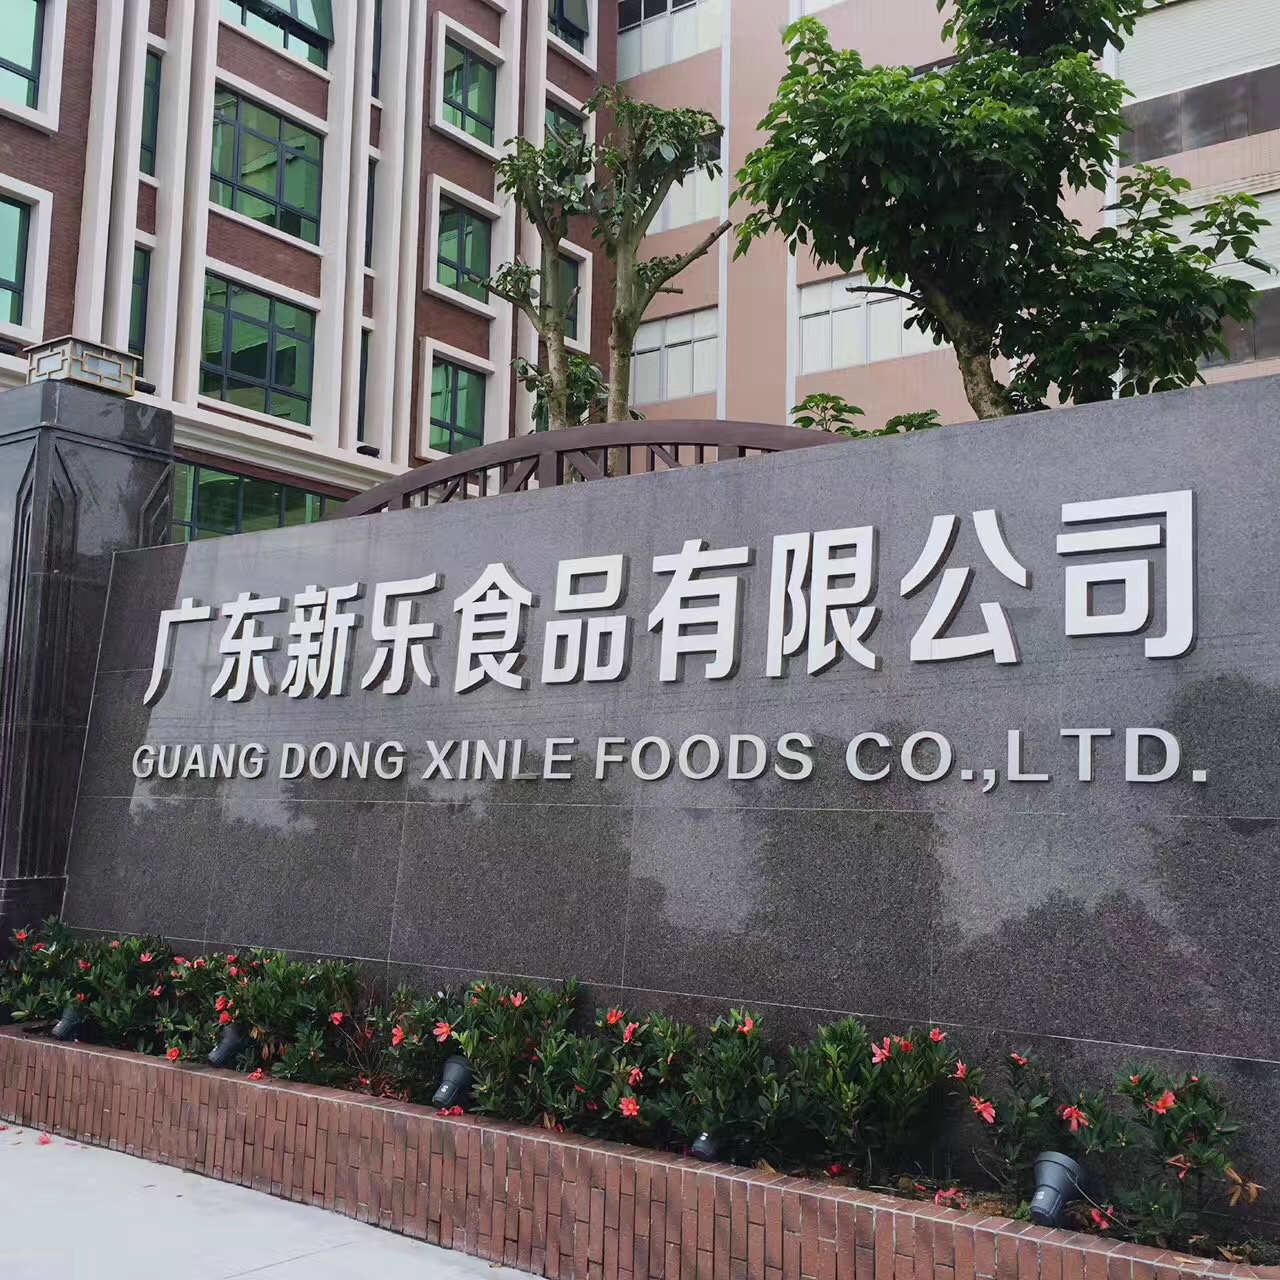 Guangdong Xinle Foods Co.,Ltd.